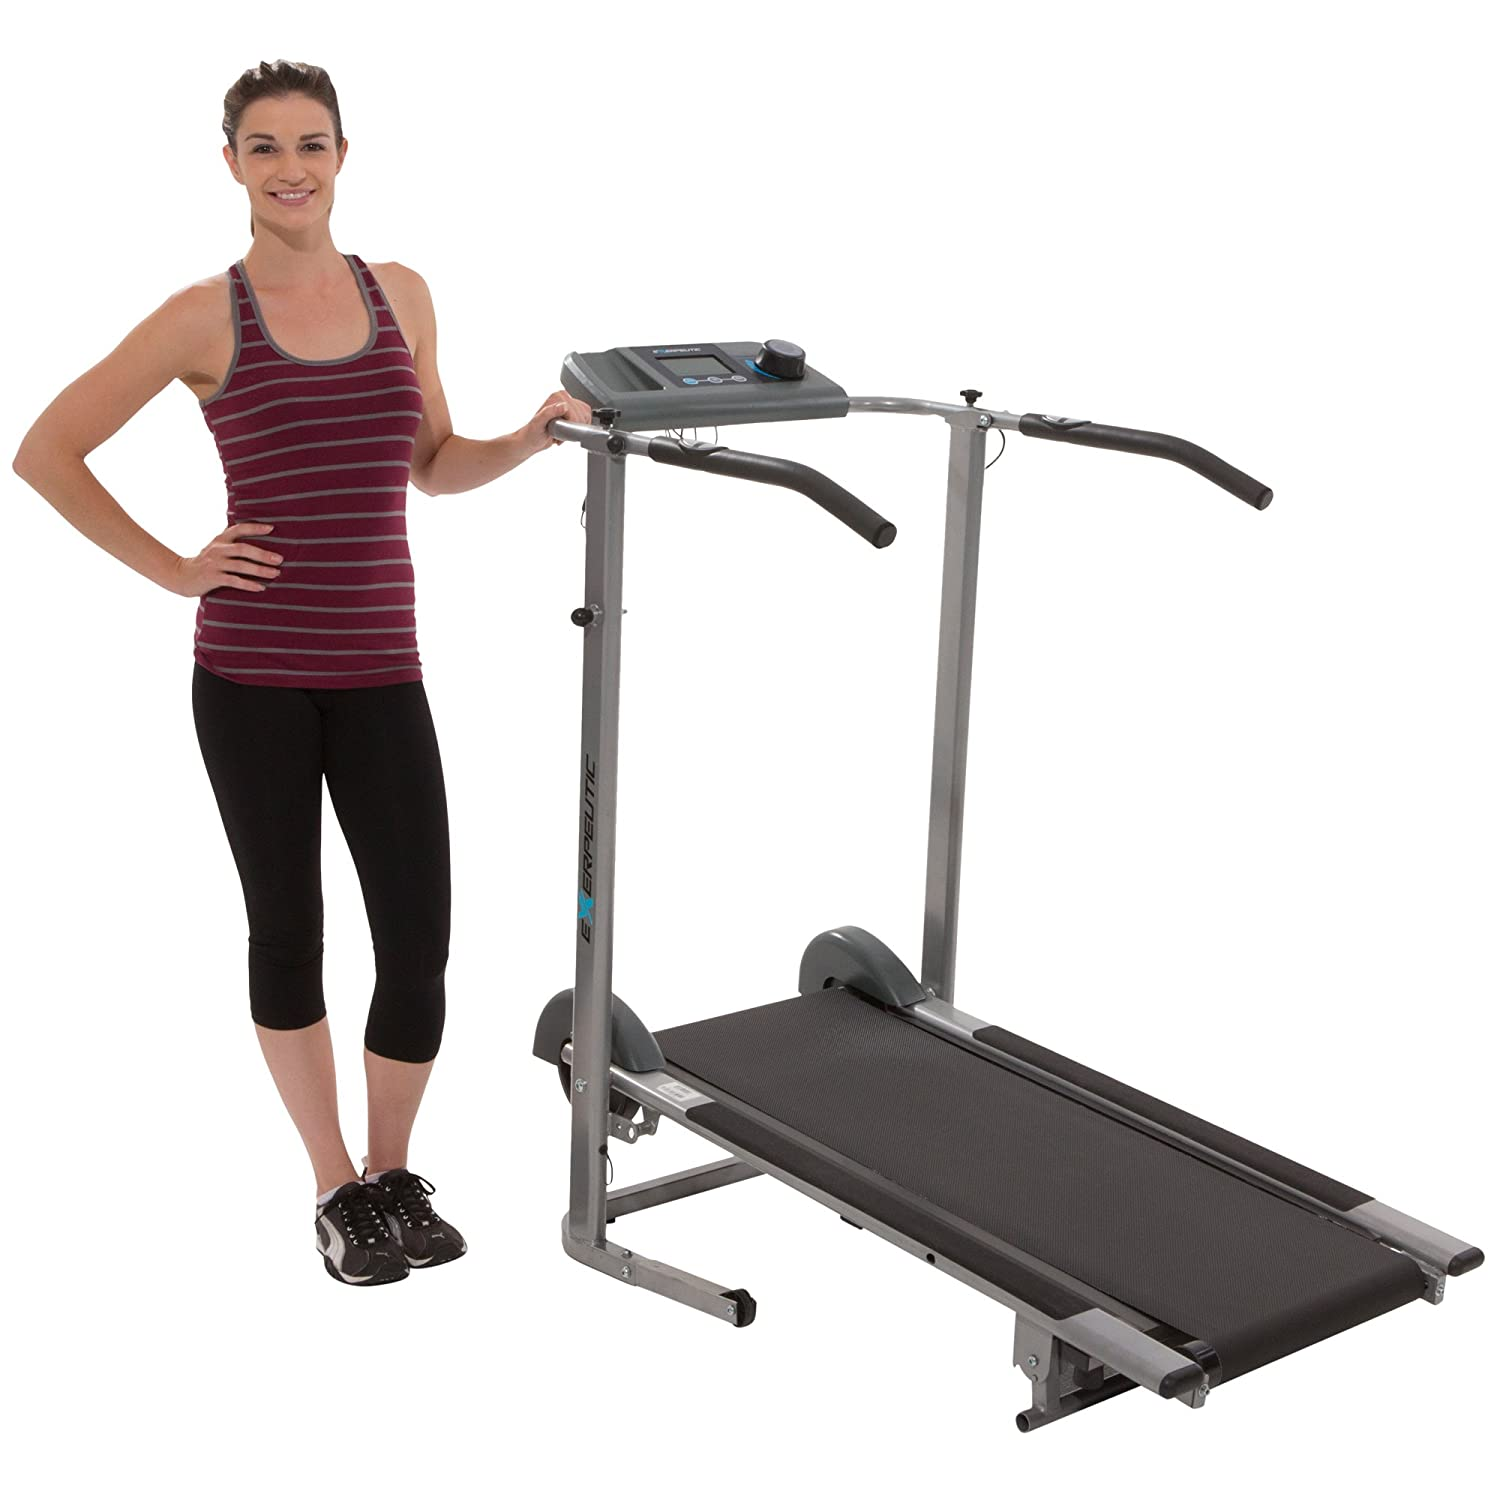 Exerpeutic Magnetic Resistance Manual Treadmill with Heart Pulse System